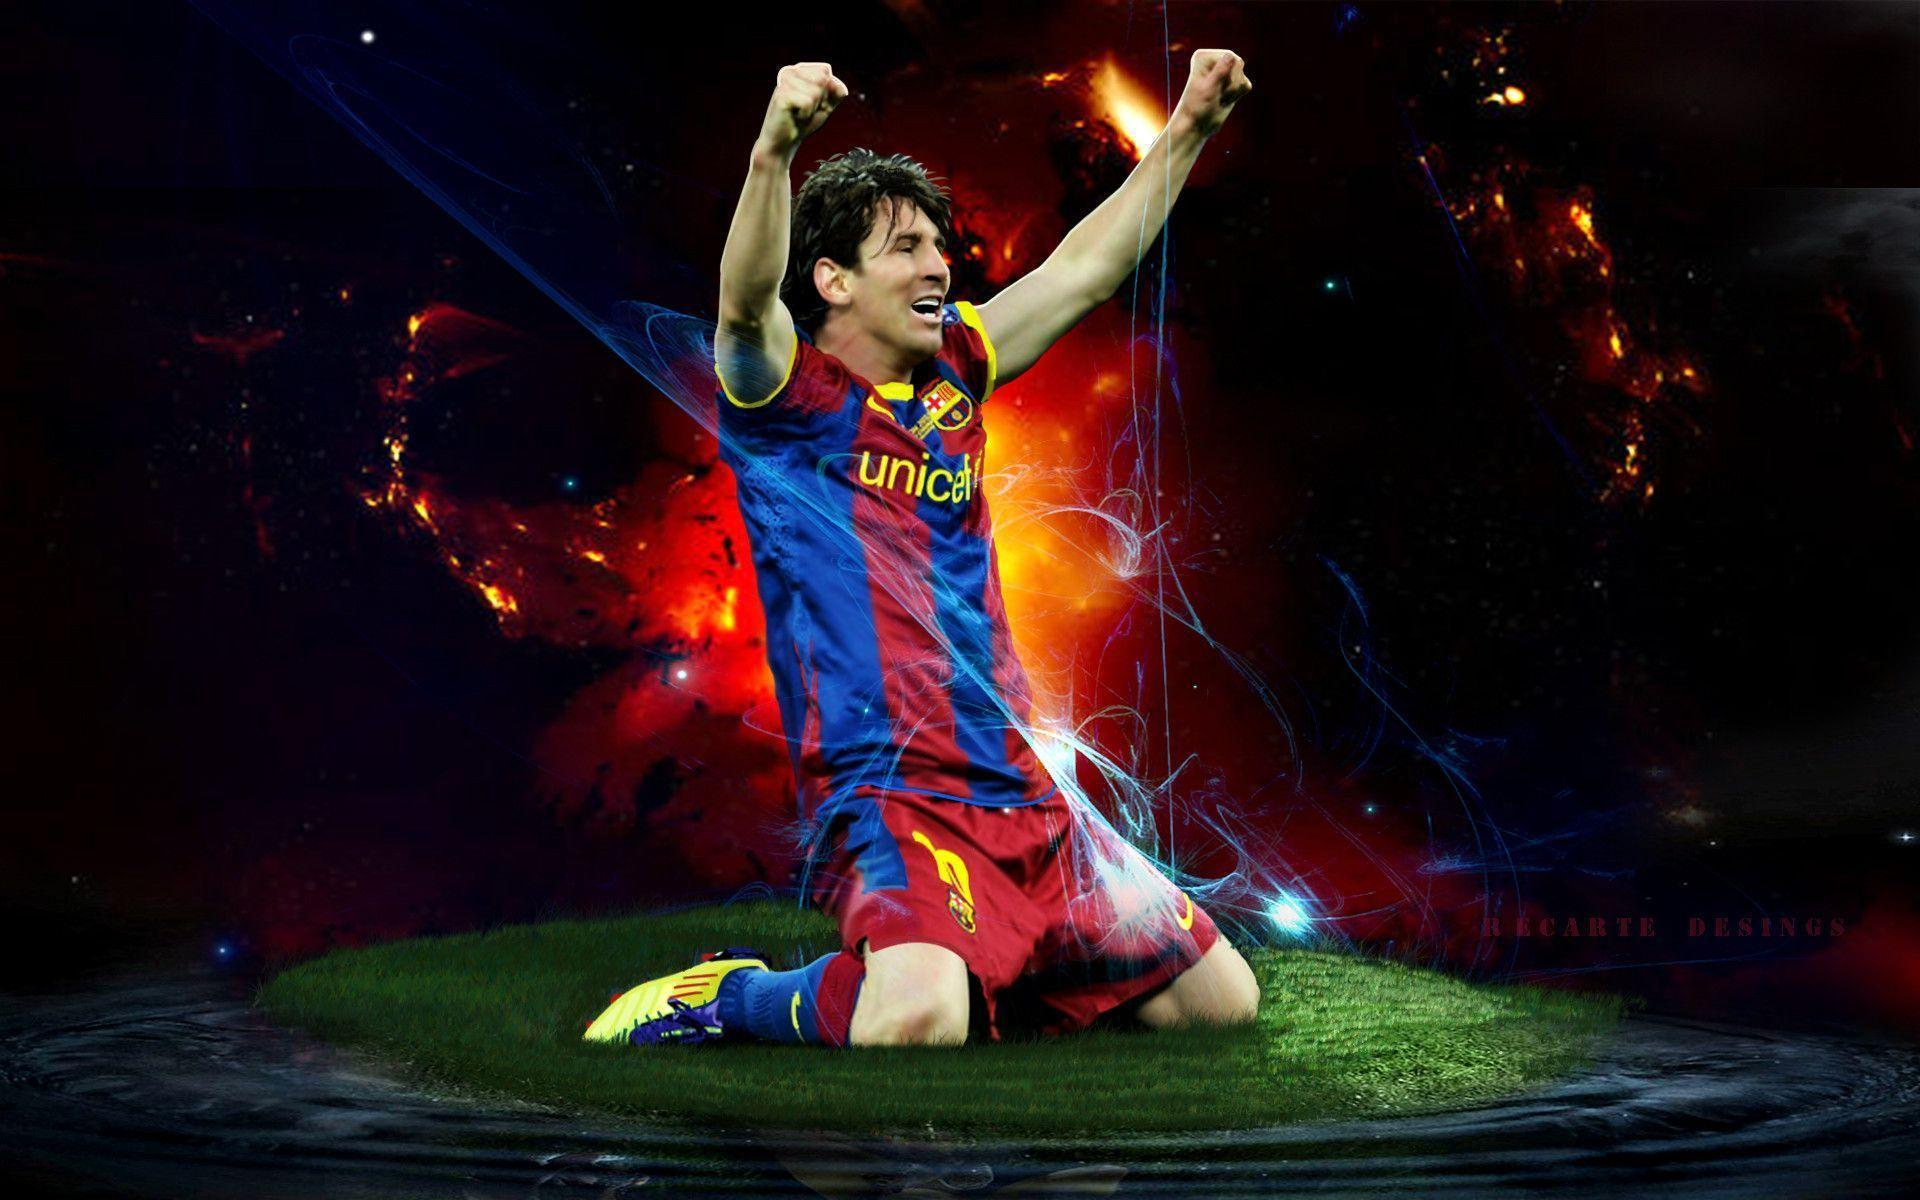 Lionel Messi 2015 1080p HD Wallpapers 1920x1200